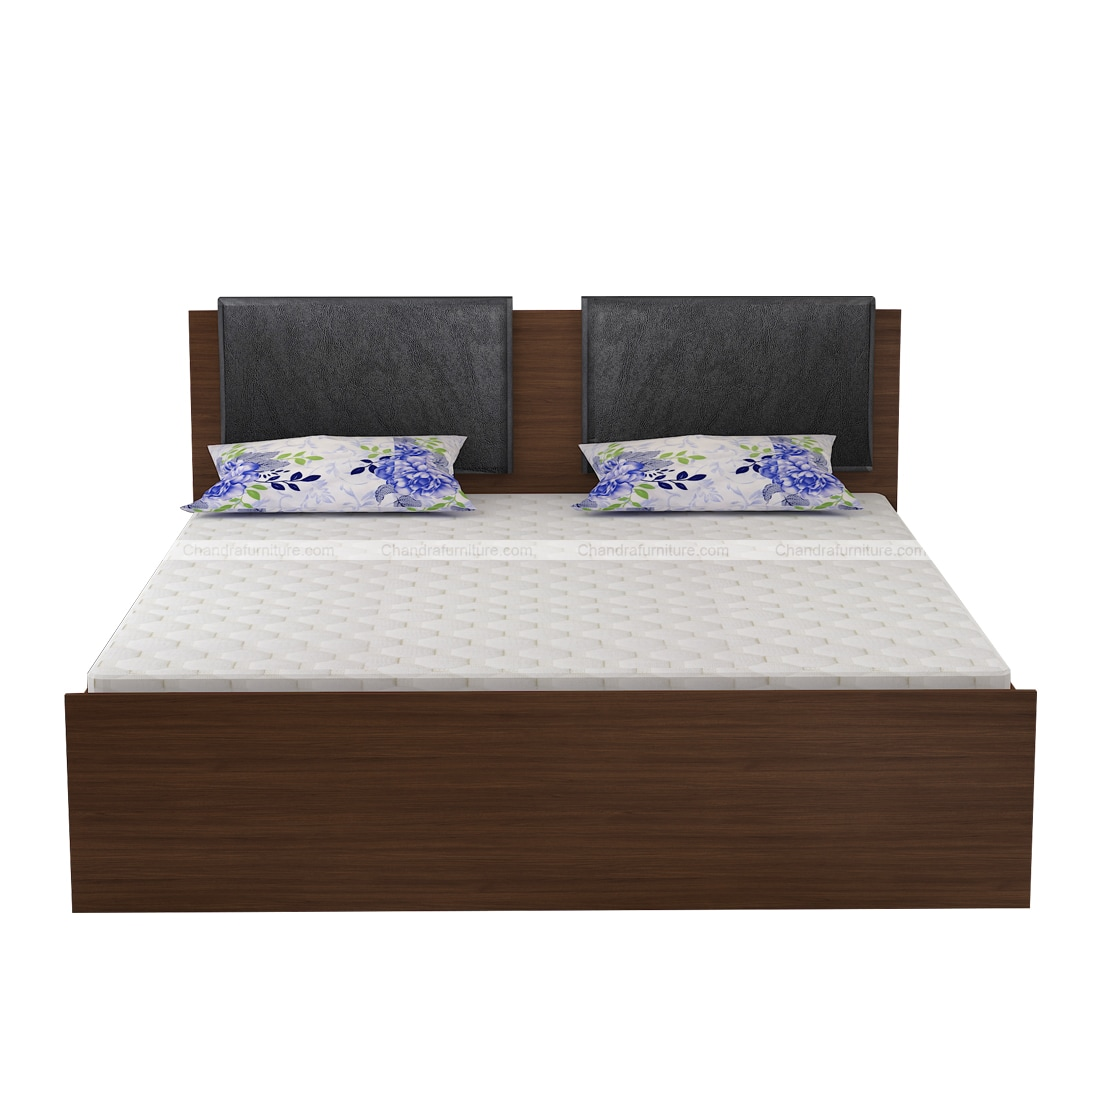 Chandra Furniture King Size Bed